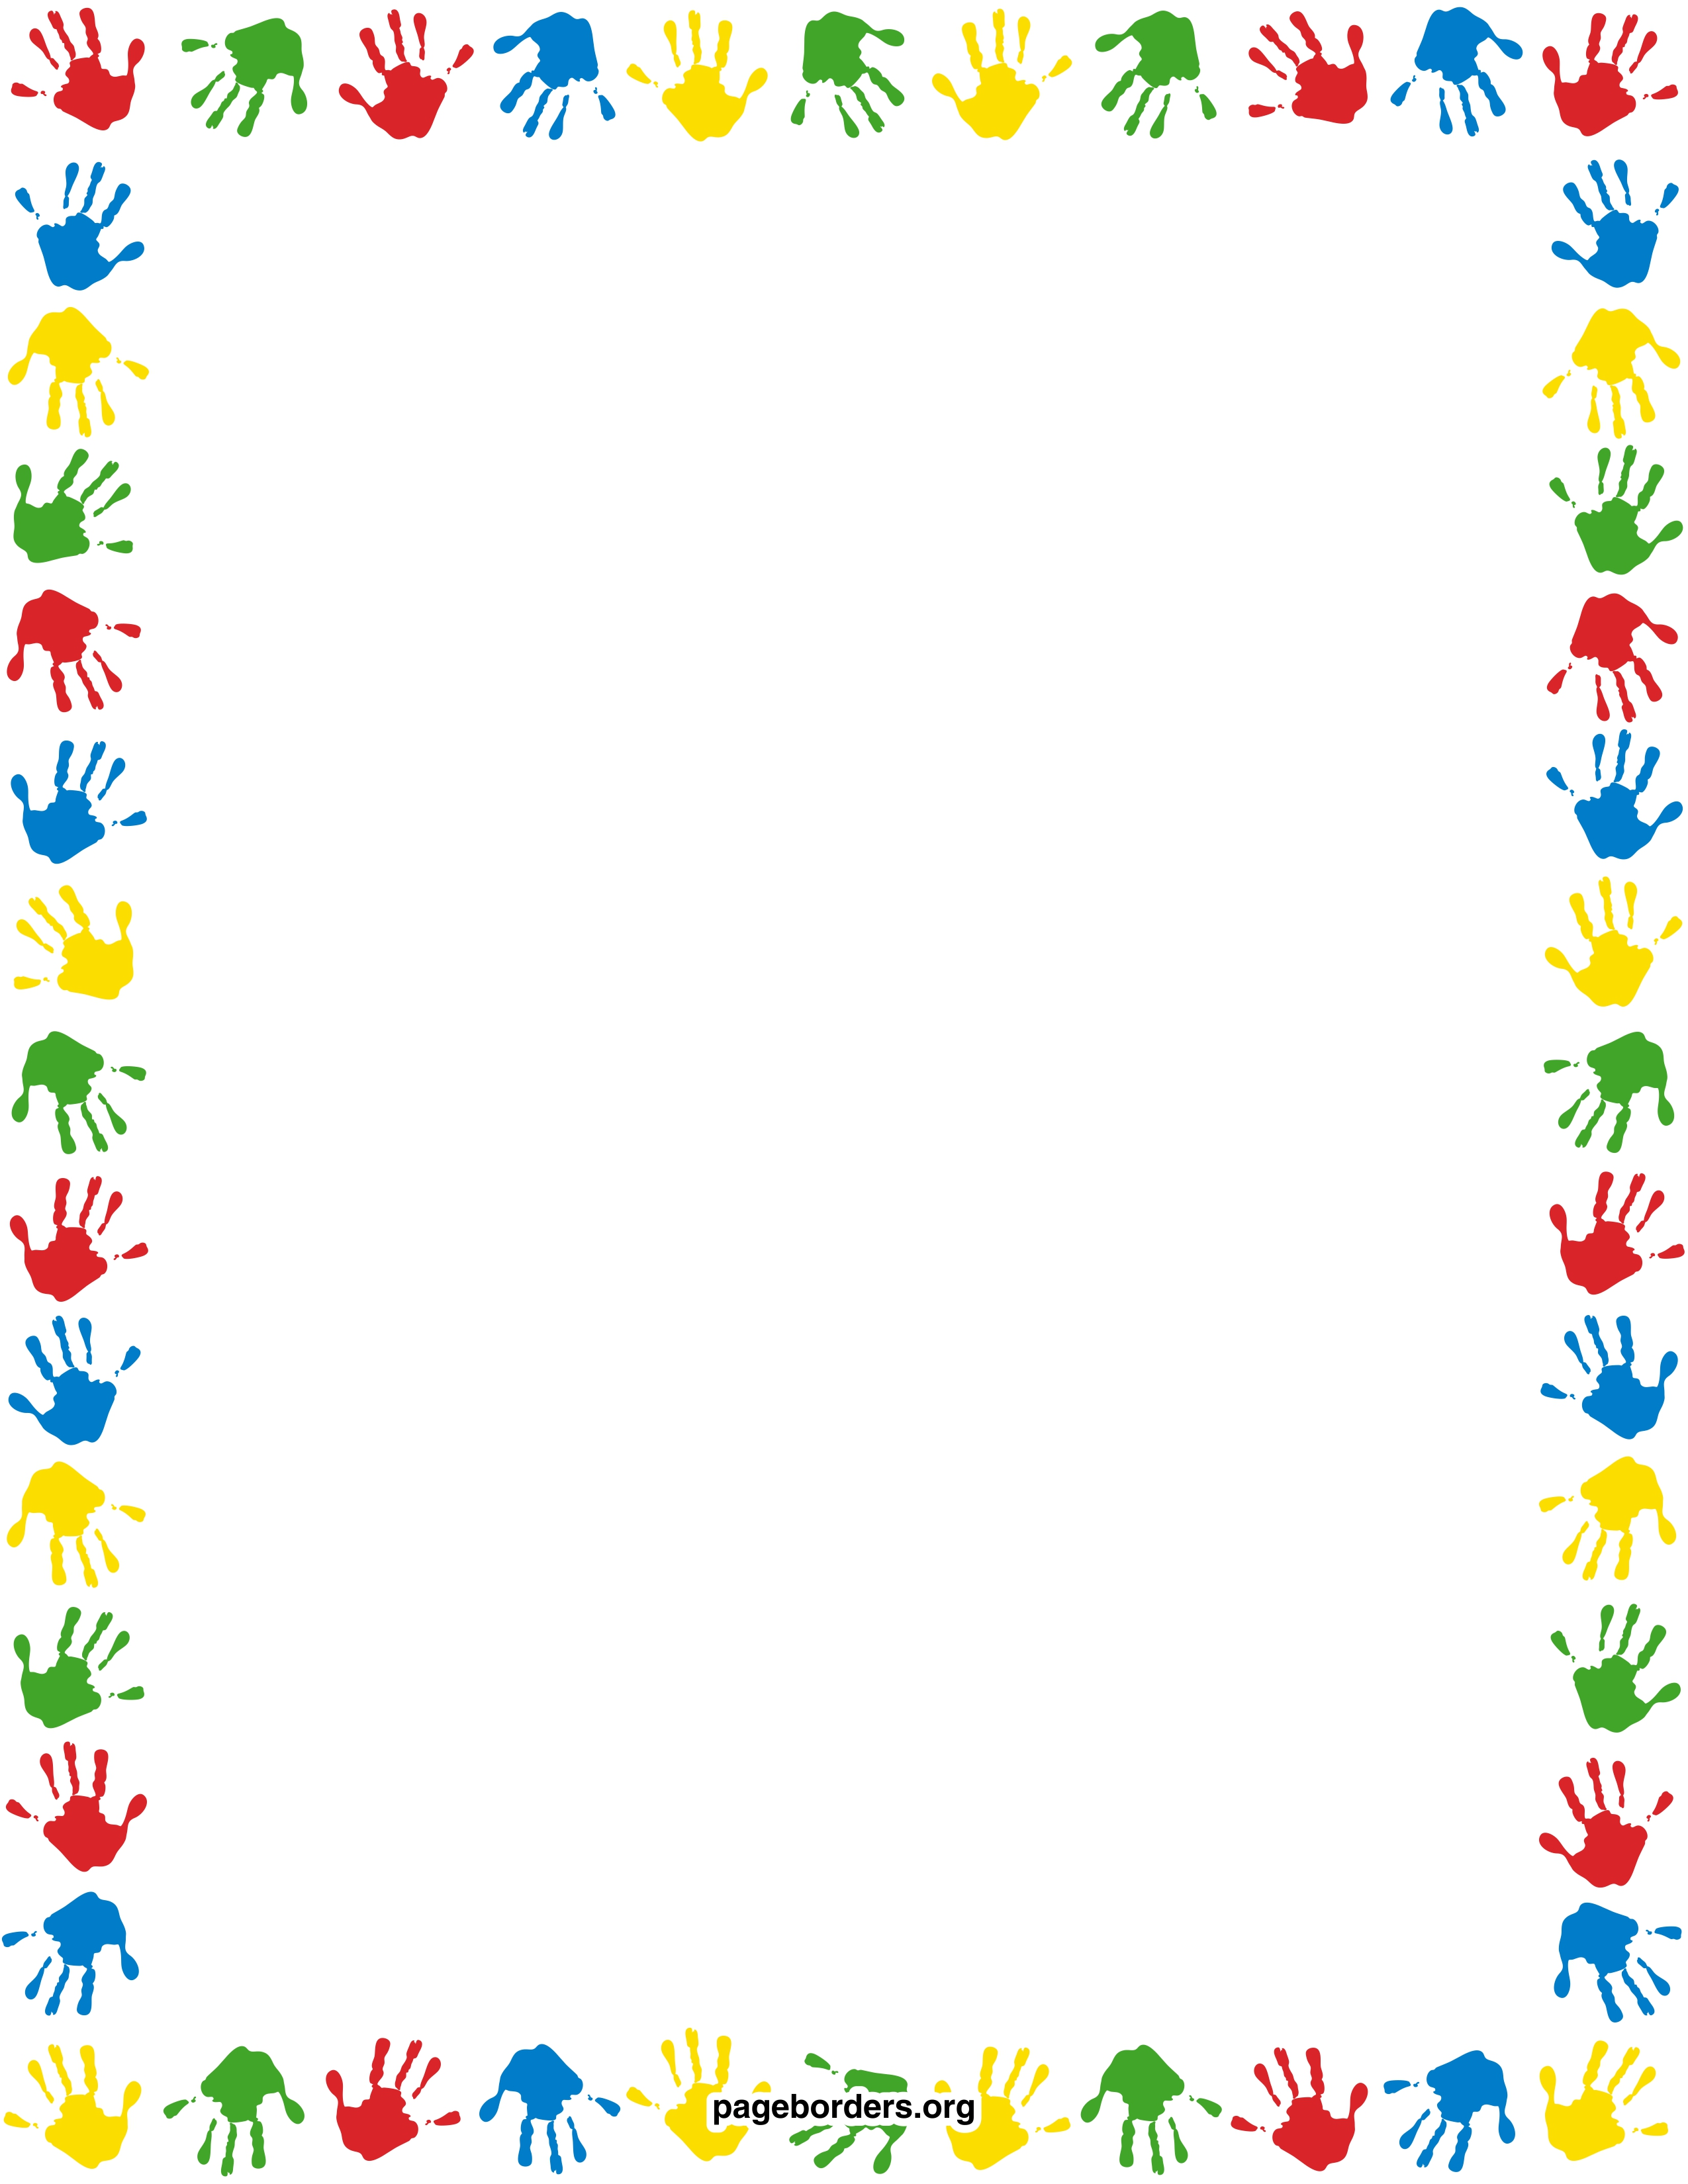 Handprint clipart border Watermarked and border handprint PDF